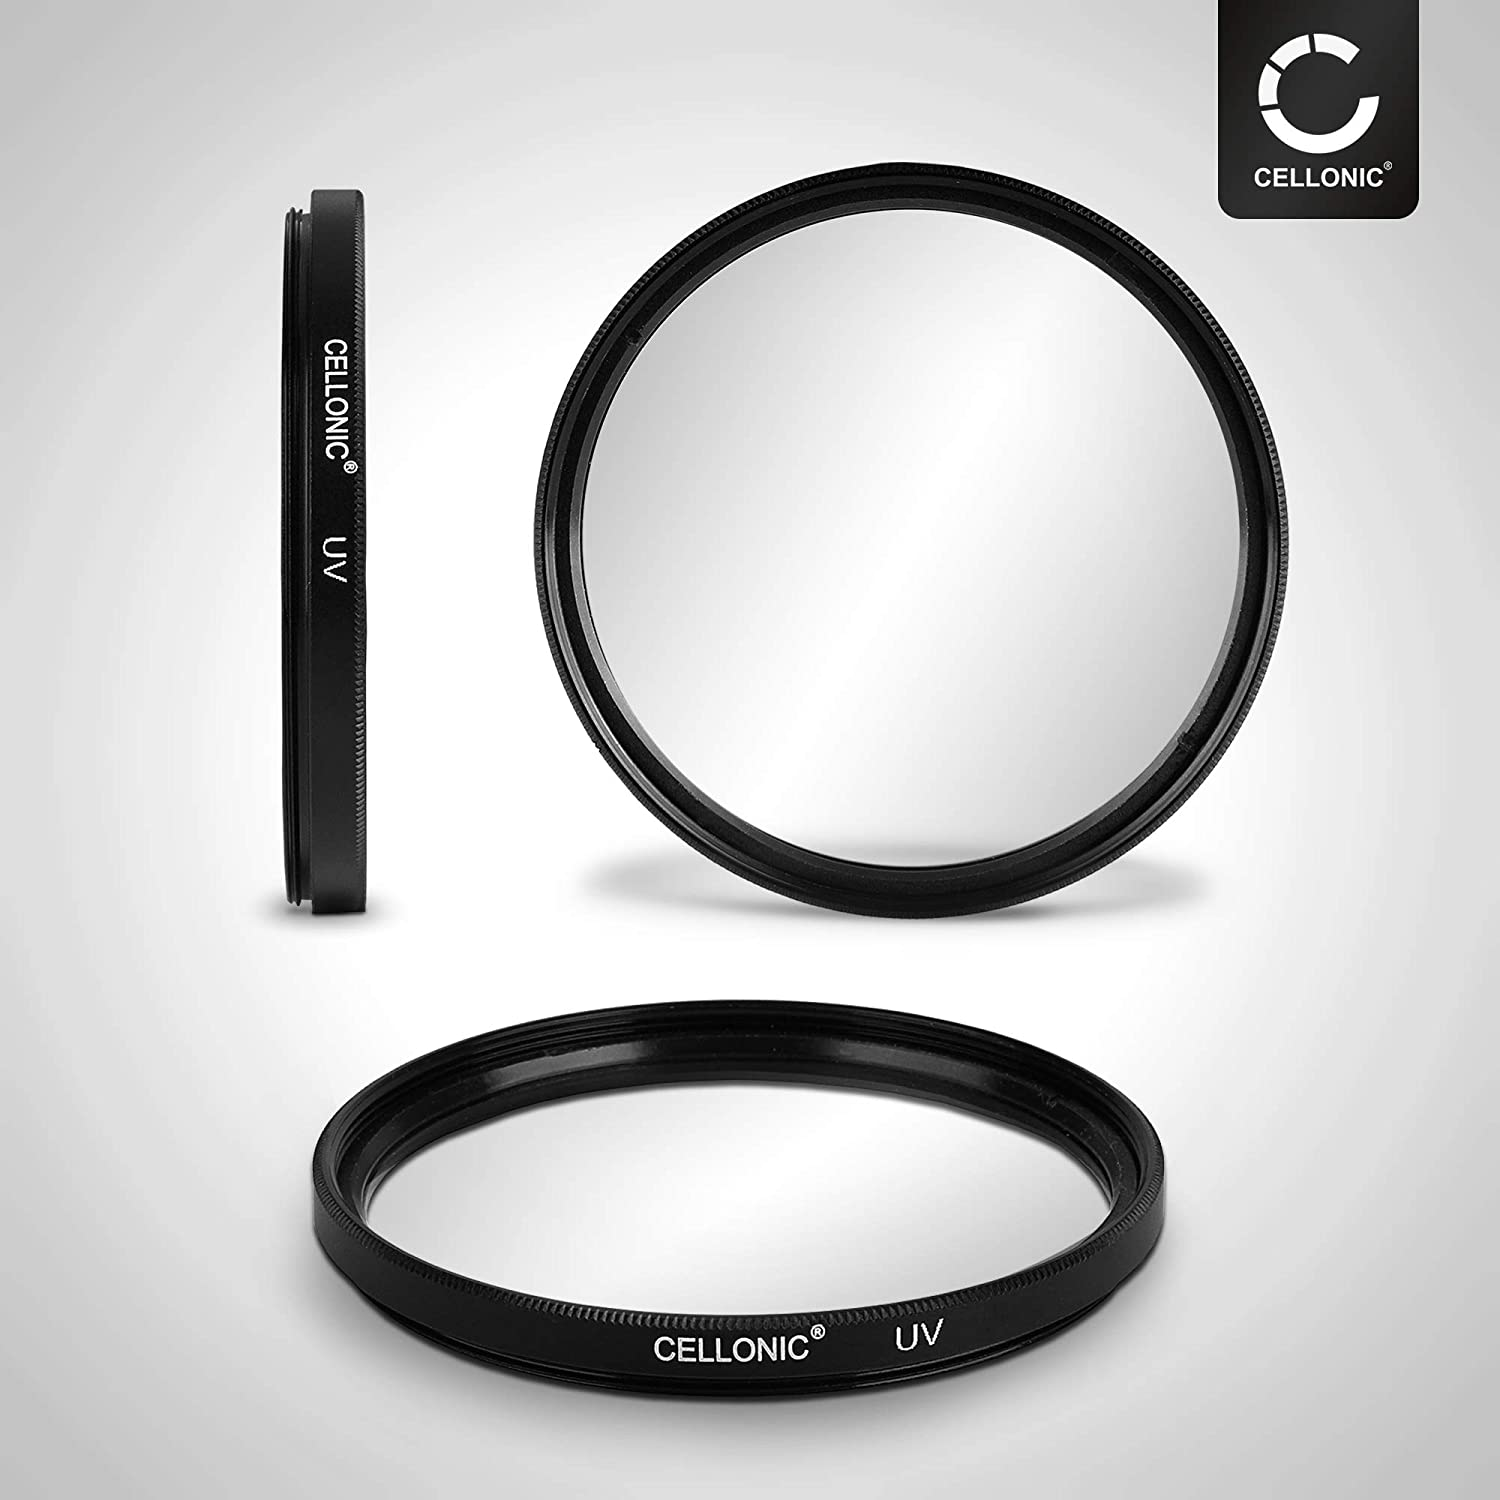 CELLONIC Filtro UV Compatible con Panasonic Lumix G Vario 14-42mm 14-45mm 45-150mm 45-200mm Filtro Protecci/ón /Ø 52mm